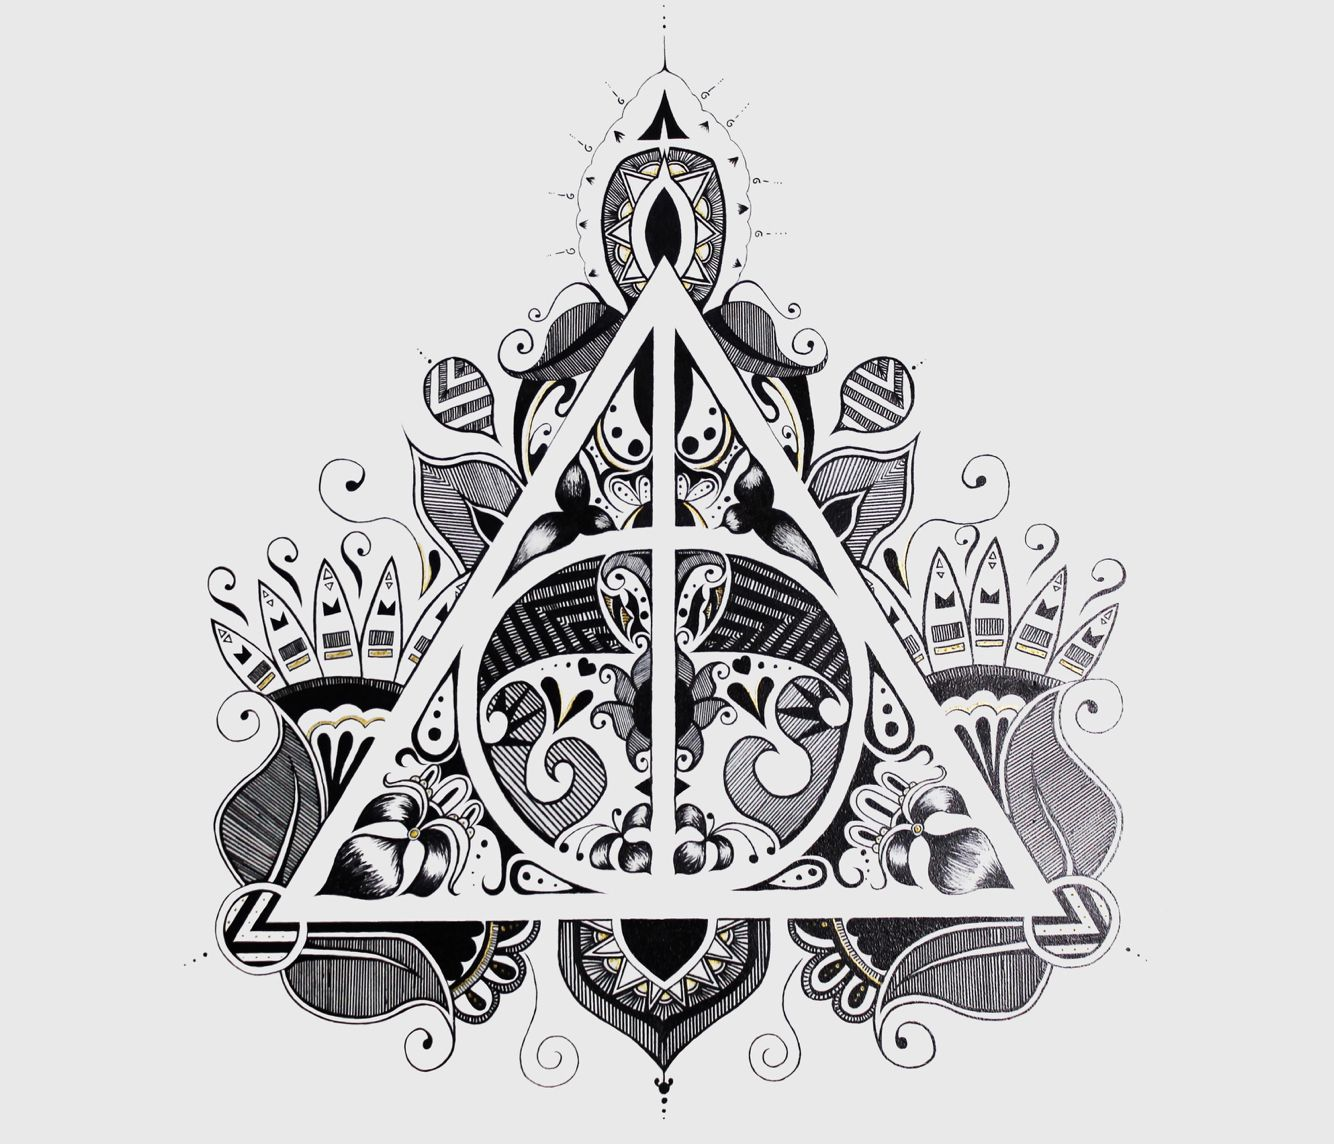 Deathly hallows symbol text copy and paste gallery symbol and image result for harry potter symbols copy and paste harry image result for harry potter symbols biocorpaavc